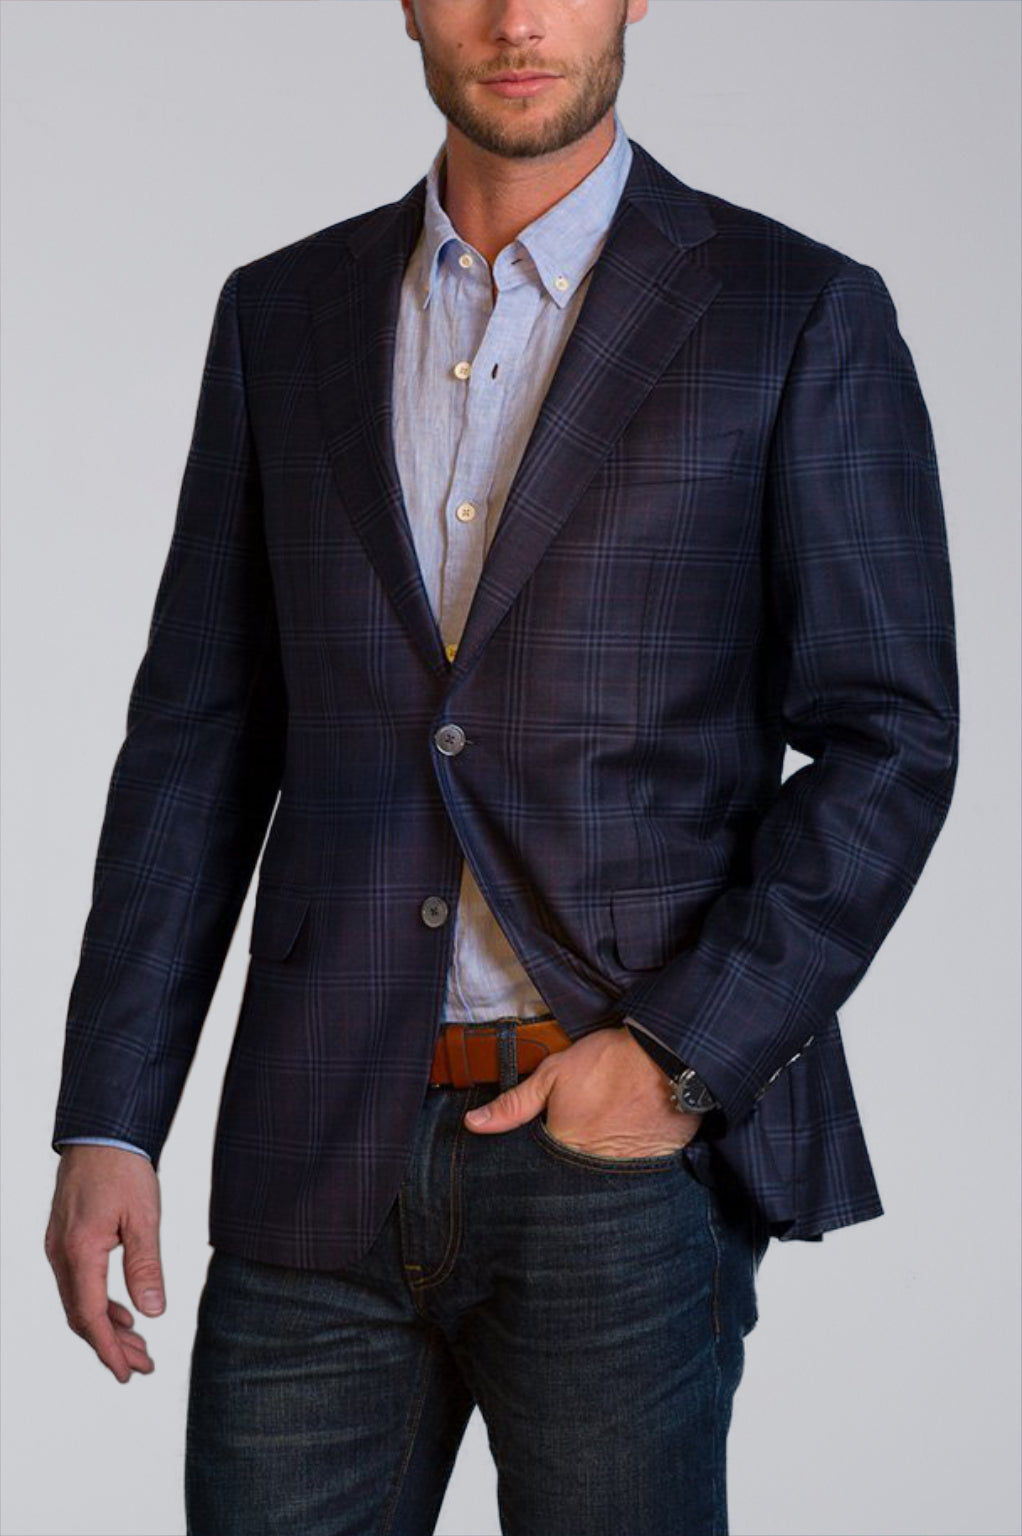 Dylan Sartorial Sport Coat in Grey and Blue Plaid - Cardinal of Canada-US